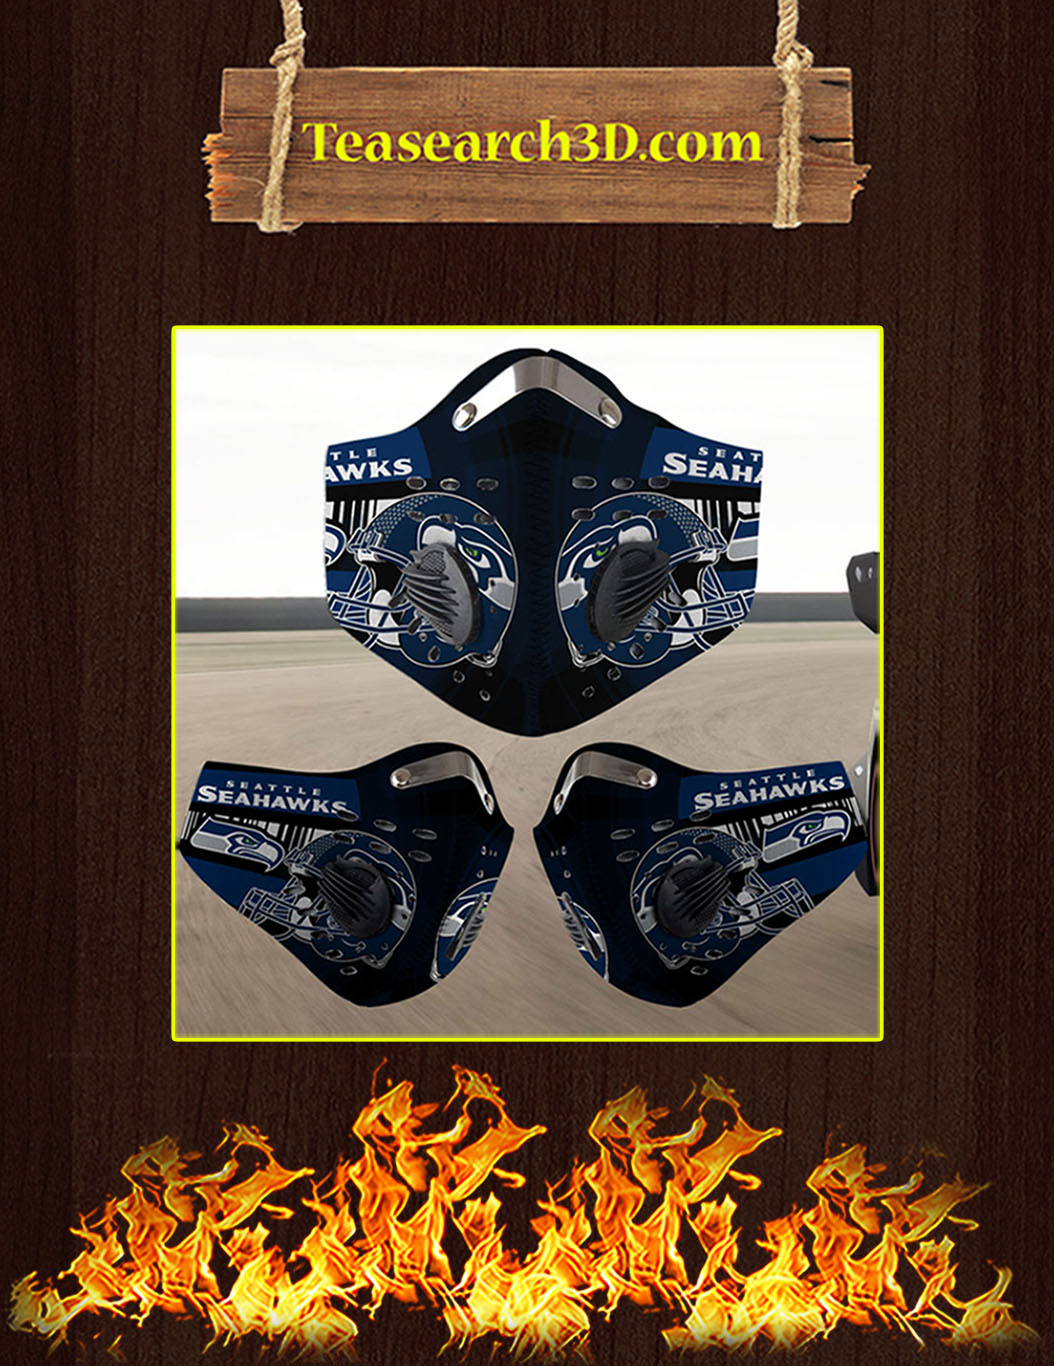 Seattle Seahawks filter face mask pack 3